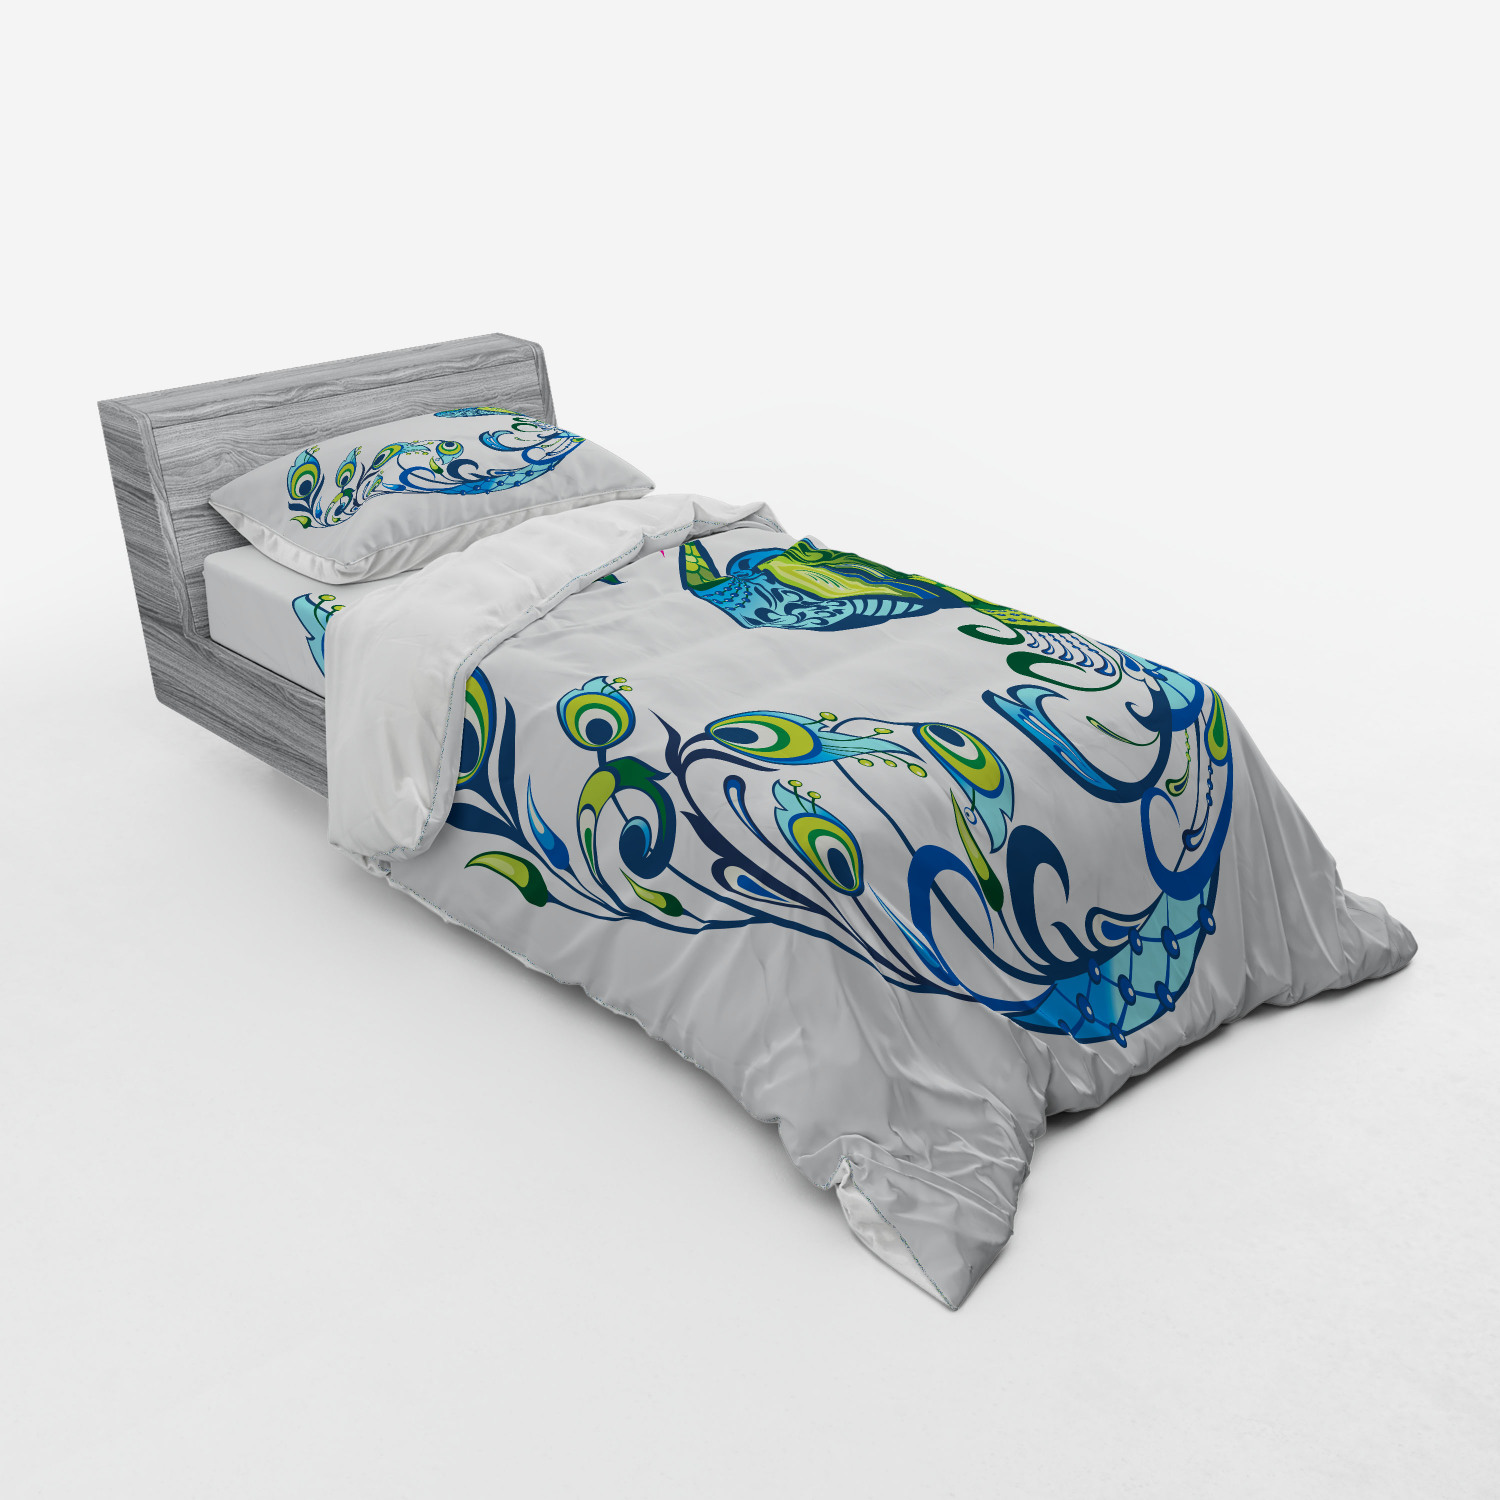 thumbnail 53 - Ambesonne Summer Bedding Set Duvet Cover Sham Fitted Sheet in 3 Sizes